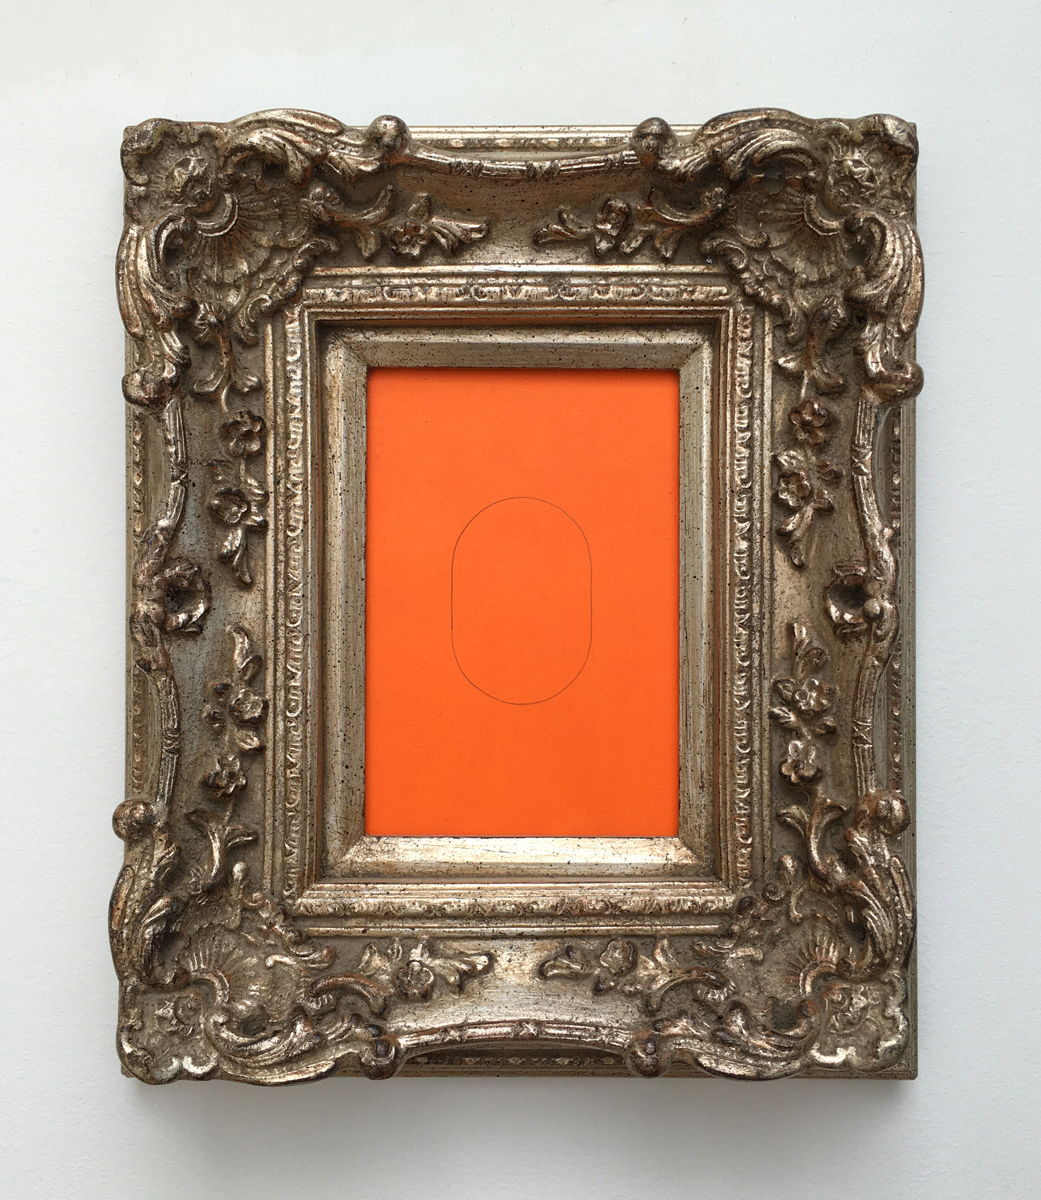 A minimalist pencil line oval on an orange background in an ornate silver frame.